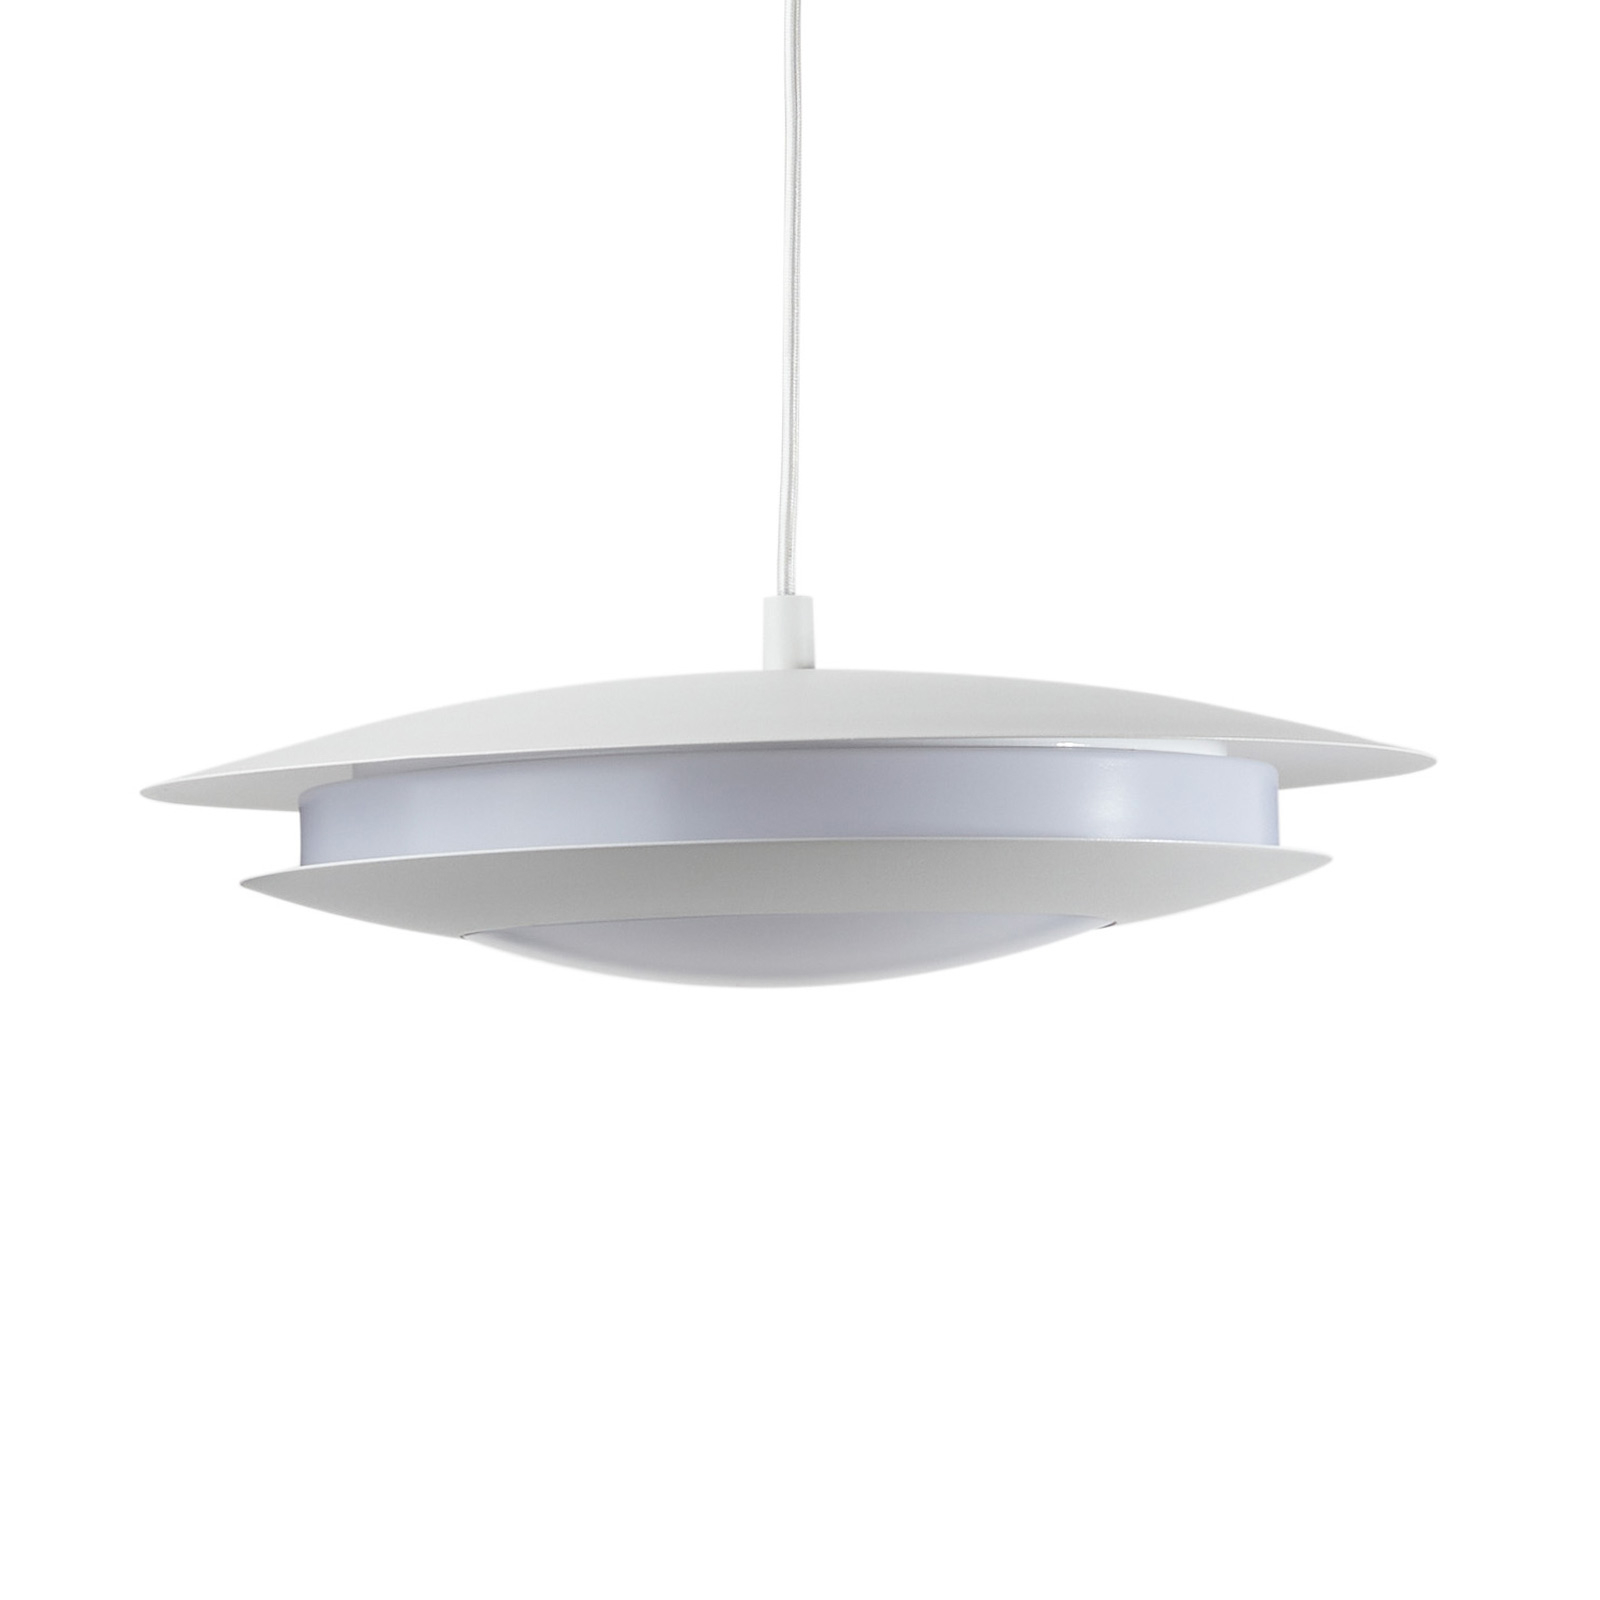 EGLO connect Moneva-C LED-Hängelampe weiß Ø 40,5